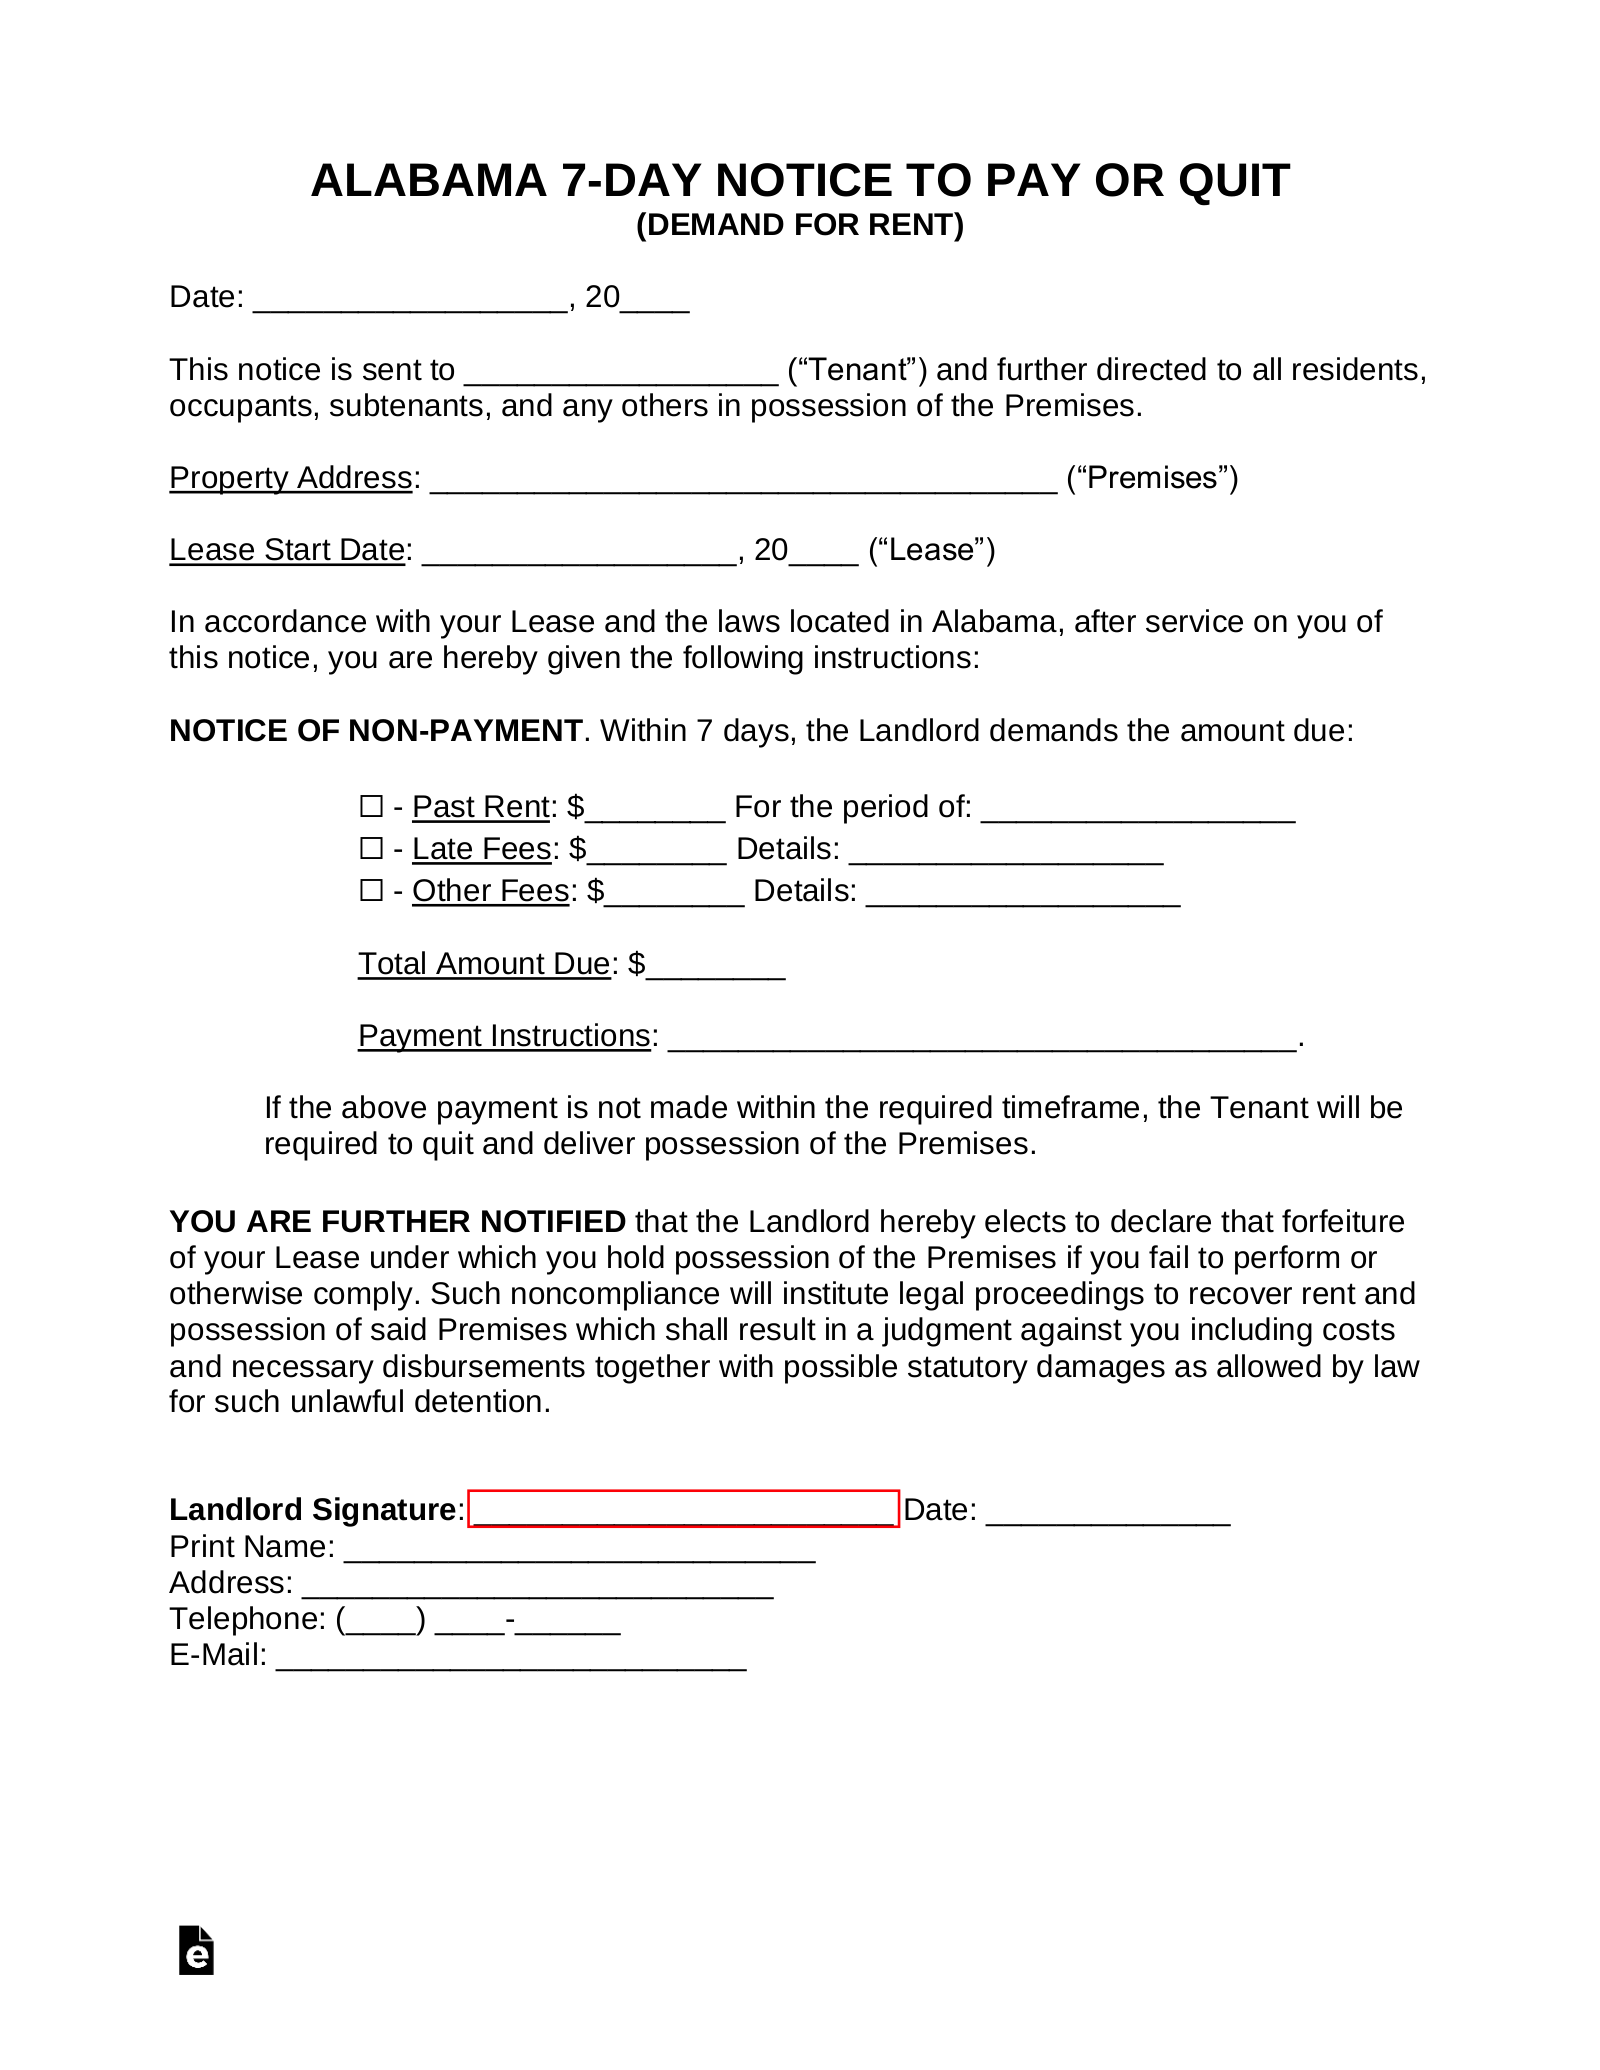 alabama-7-day-notice-to-quit-form Sale Agreement Letter Template on retail sample contract, spanish for, microsoft word, motor vehicle, free printable purchase, service line,